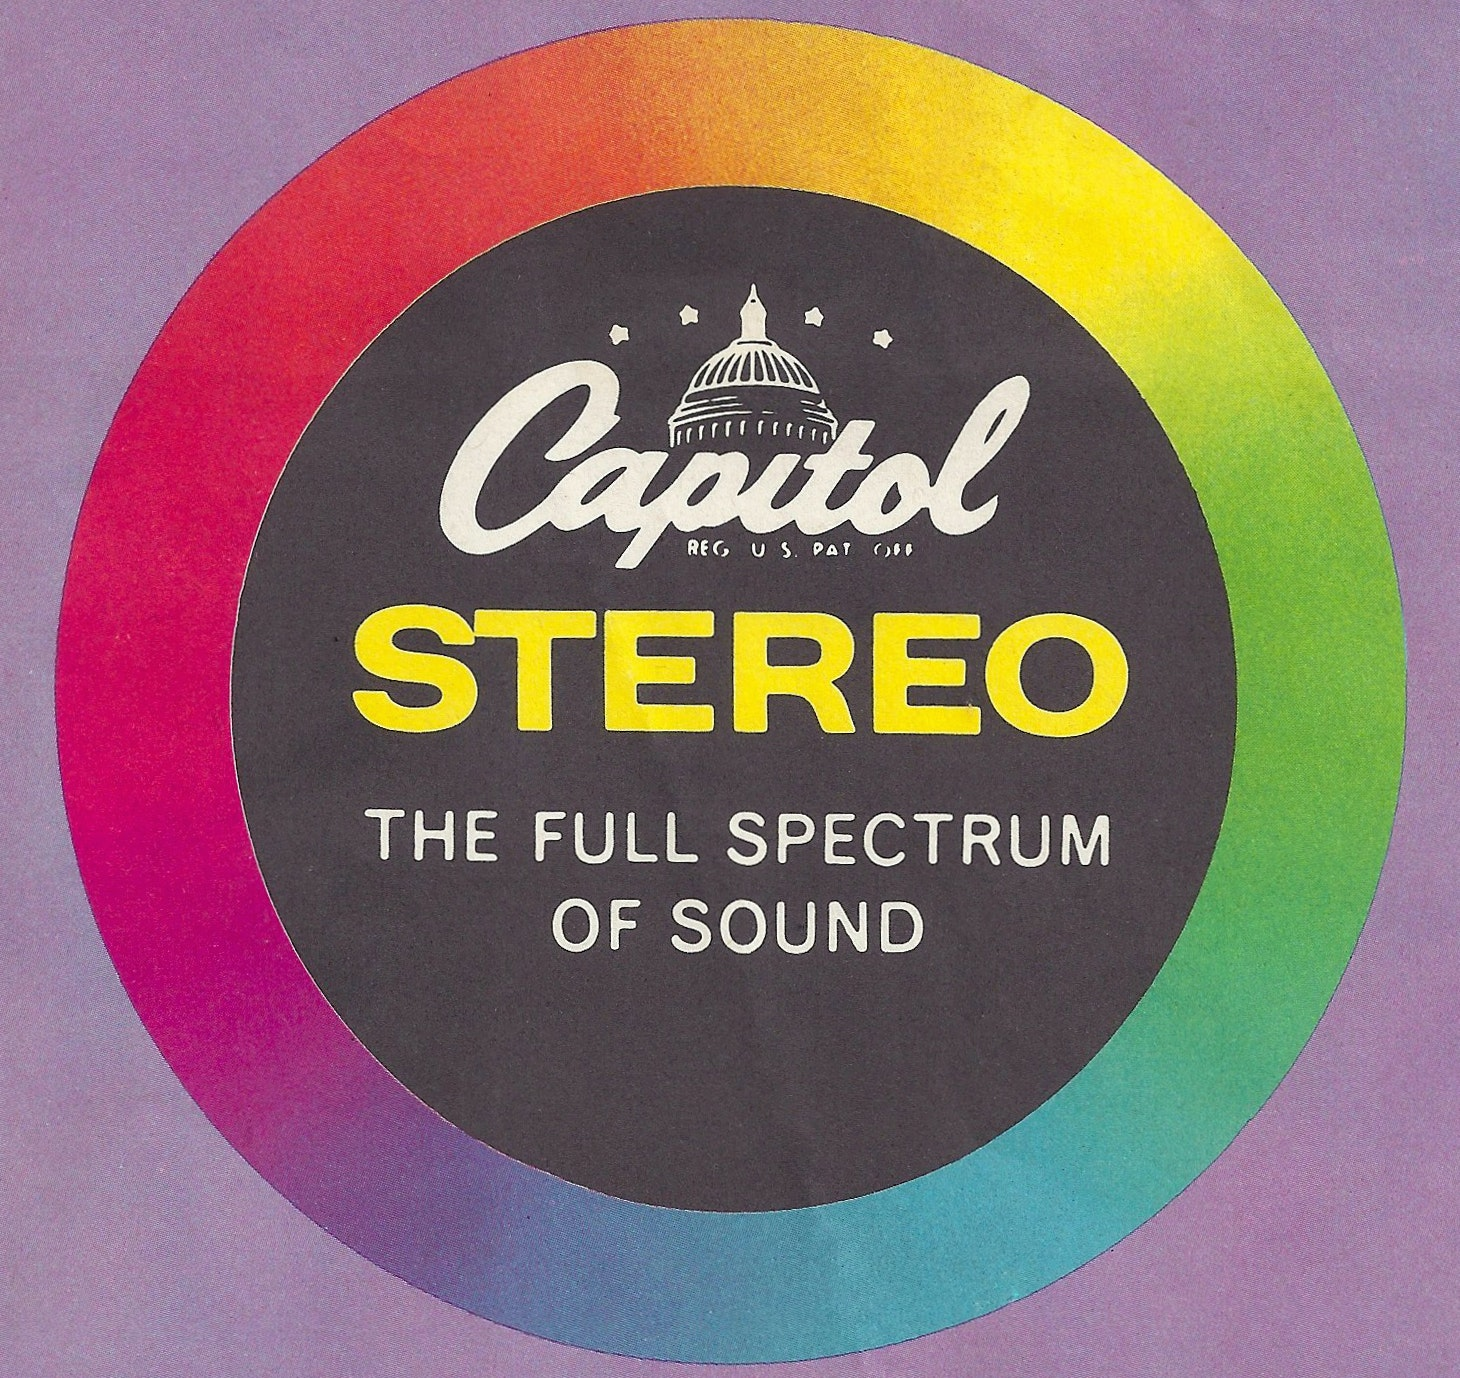 How stereo was first sold to a skeptical public